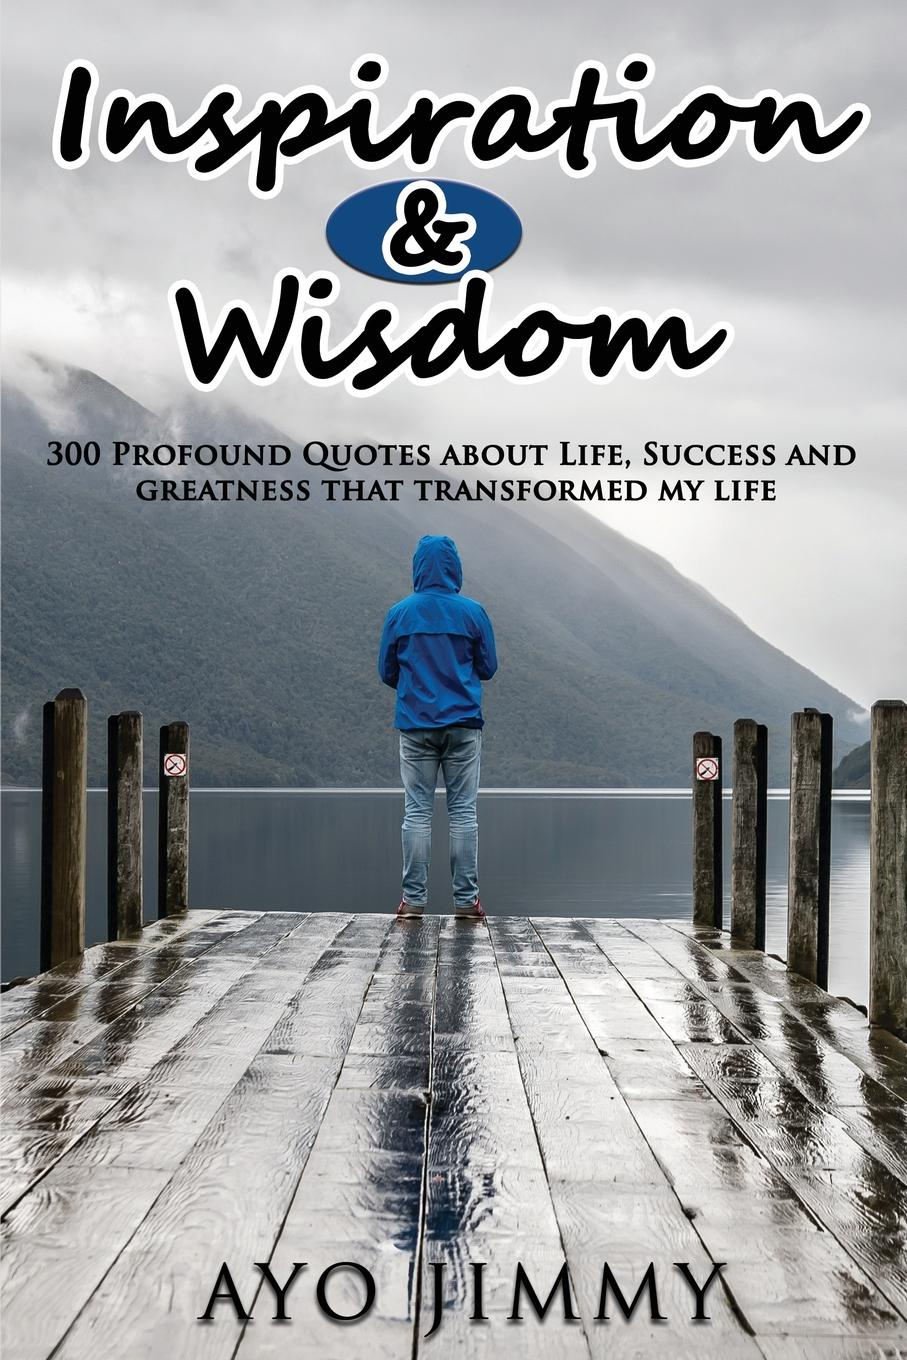 Inspiration . Wisdom. 300 profound quotes about life, success and greatness that transformed my life